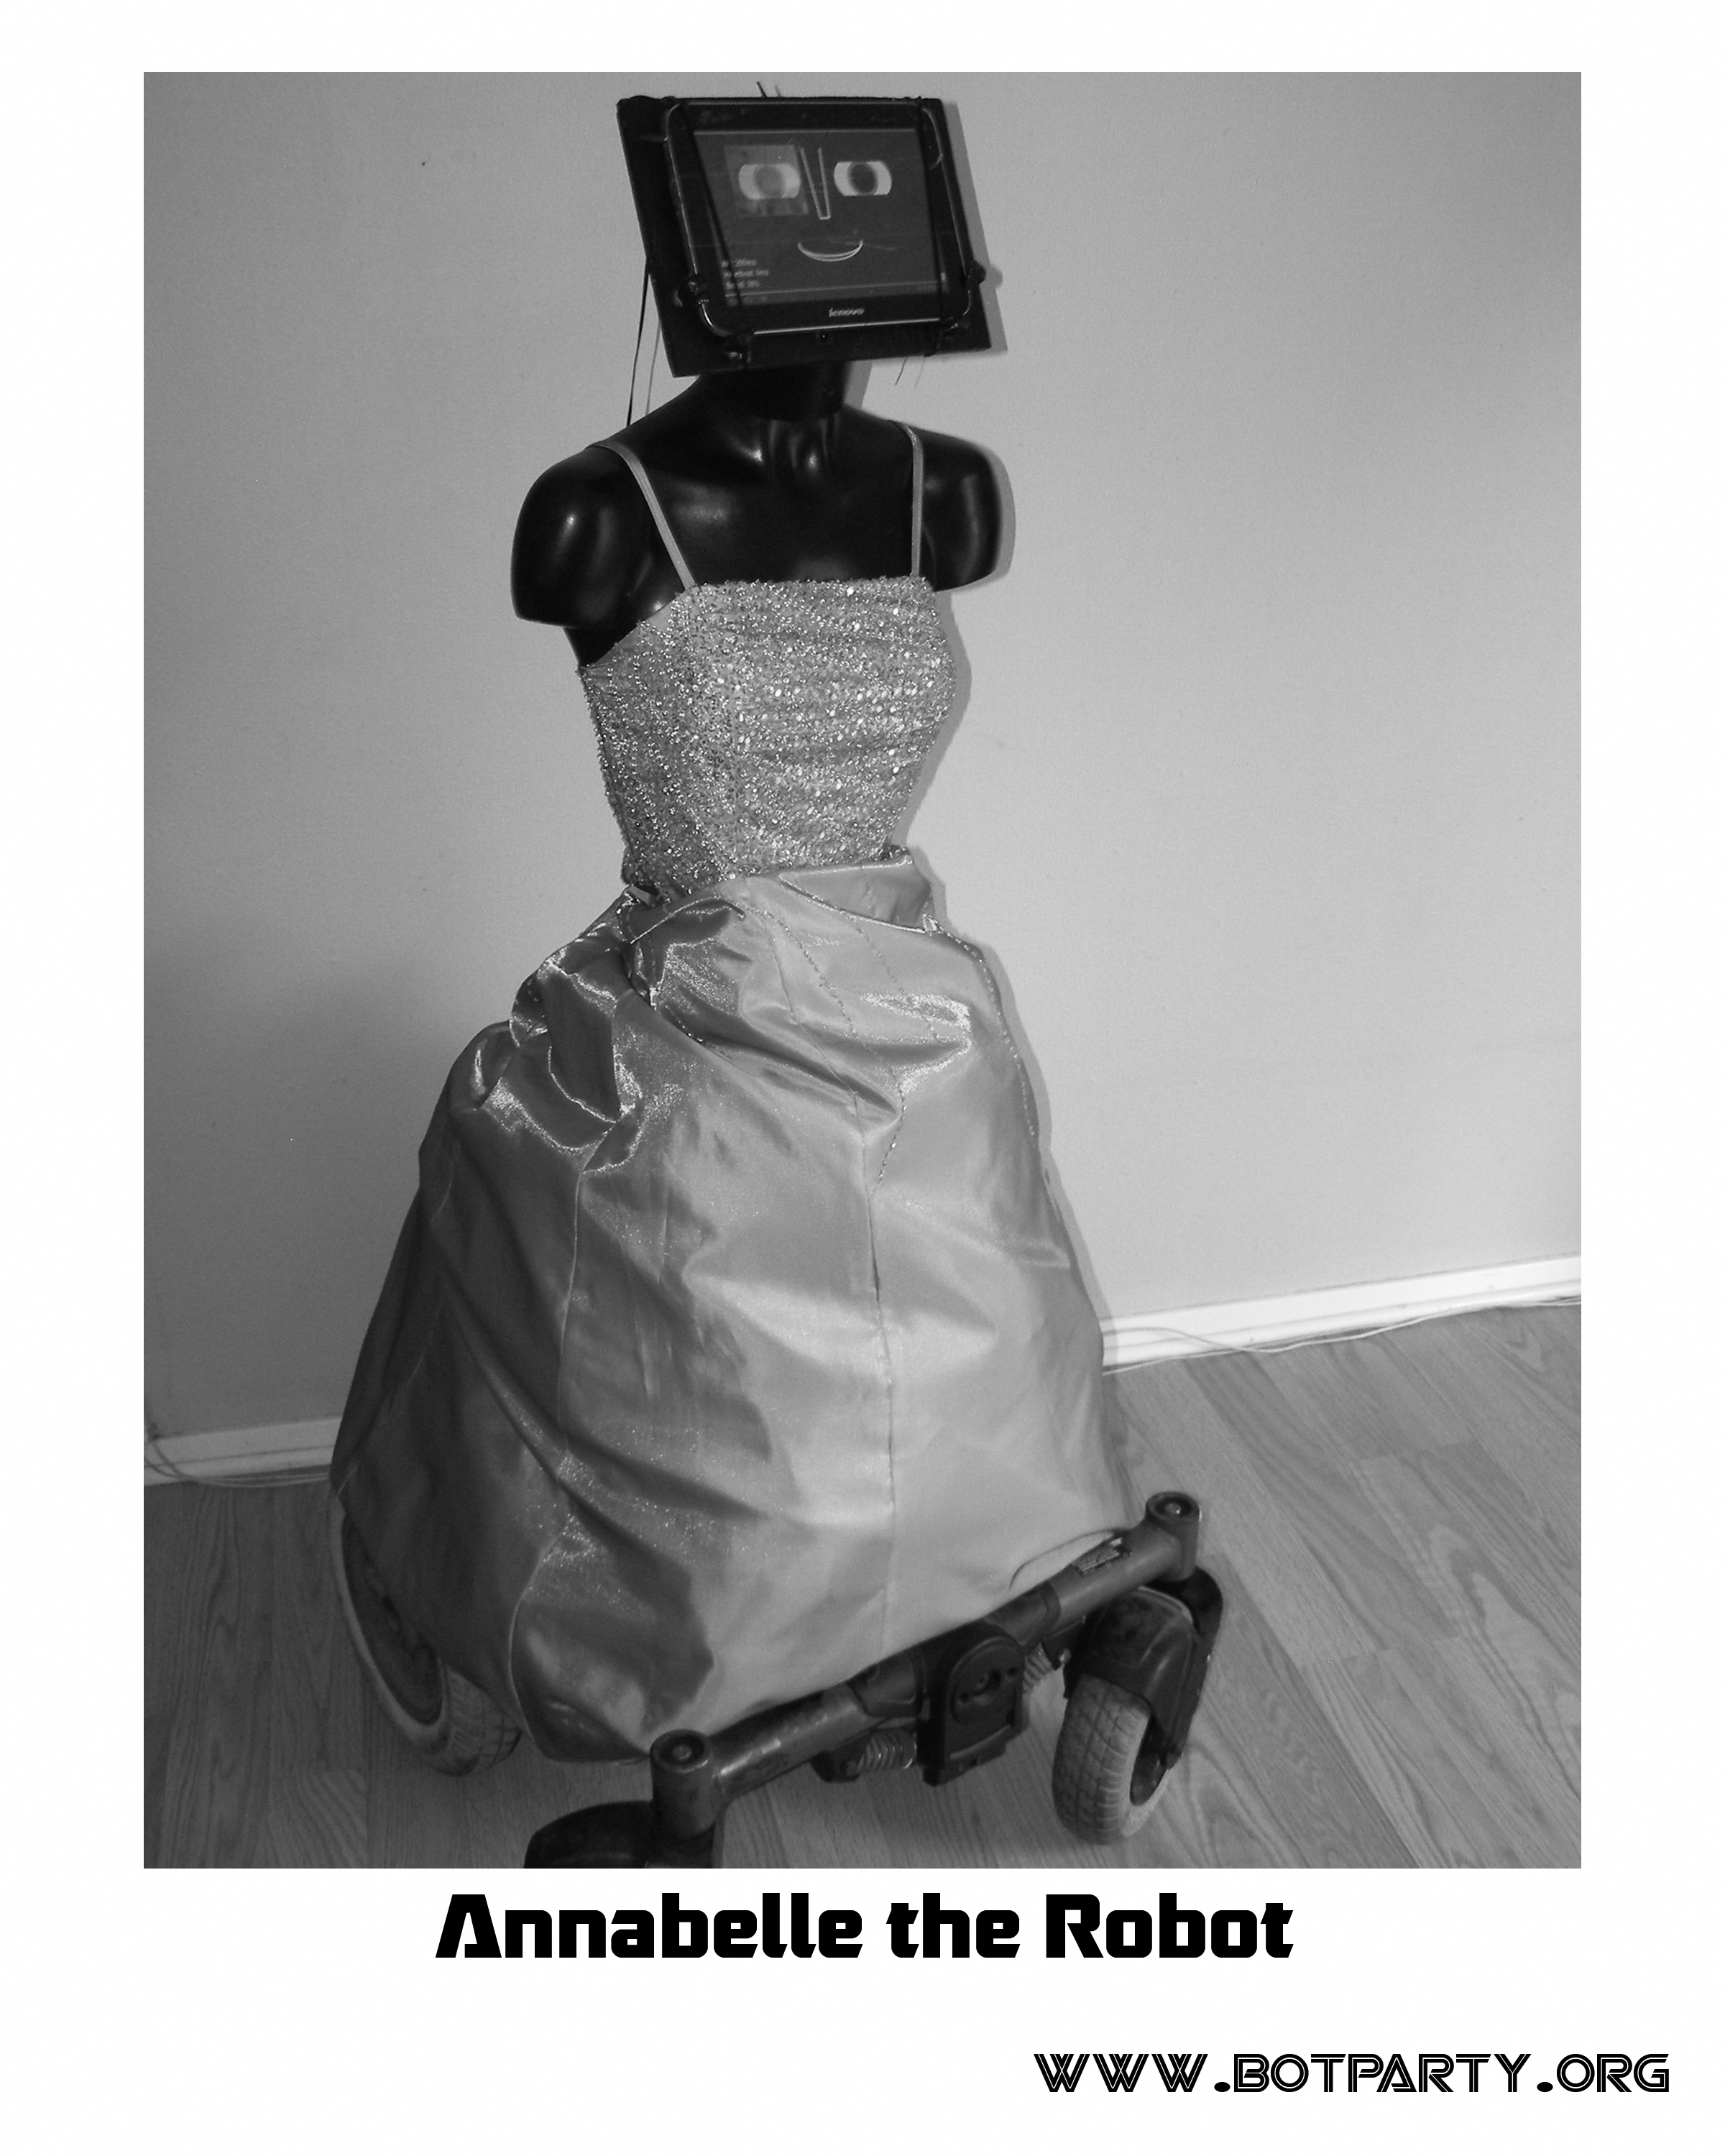 Annabelle the Robot